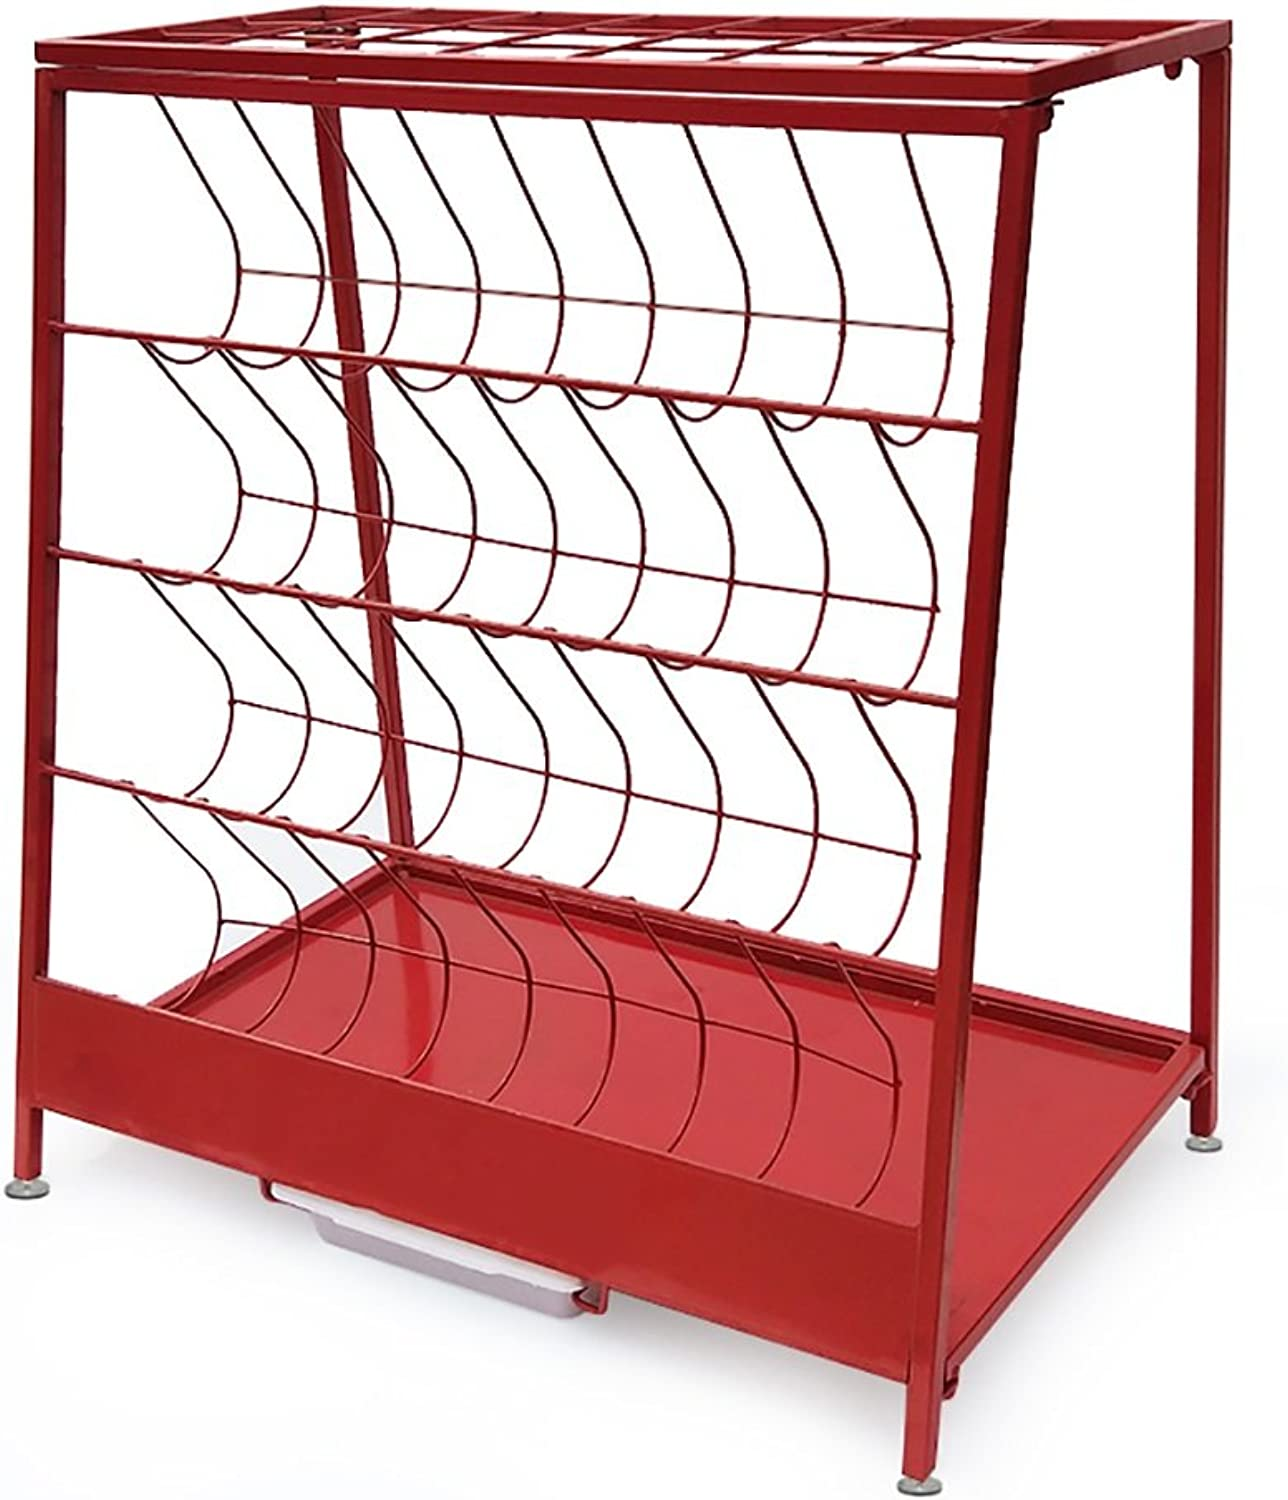 LICCC Iron Umbrella Stand, Hotel Shop Office Home Storage Rack, Landing Umbrella Rack,Trapezoidal 60  36  67cm (color   Red)